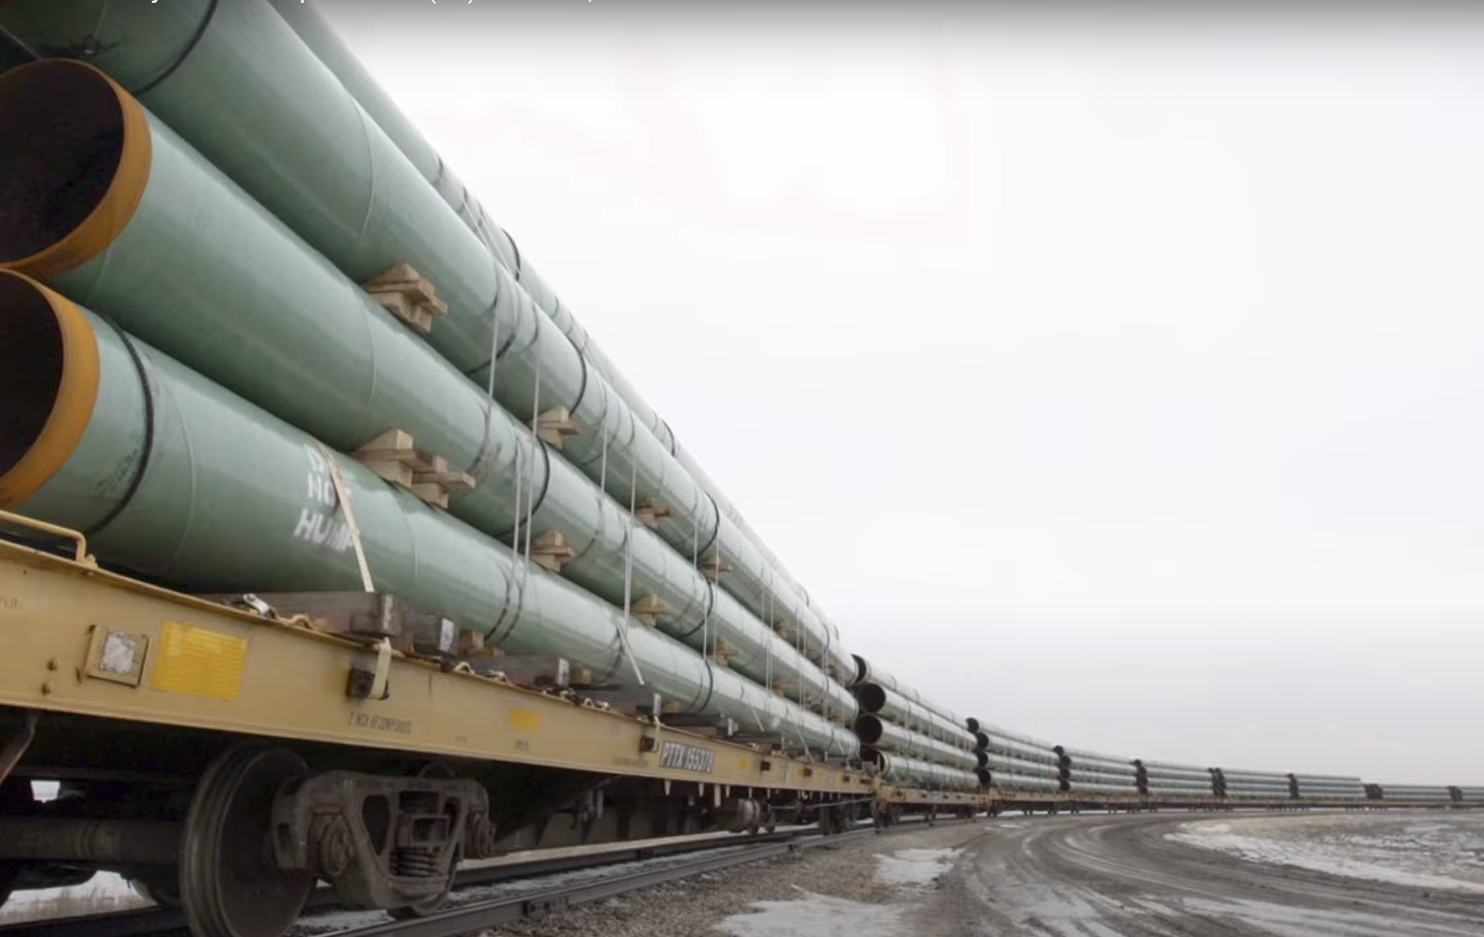 Pipe being transported by train to the Keystone XL pipeline - Screenshot courtesy of The New York Times on YouTube